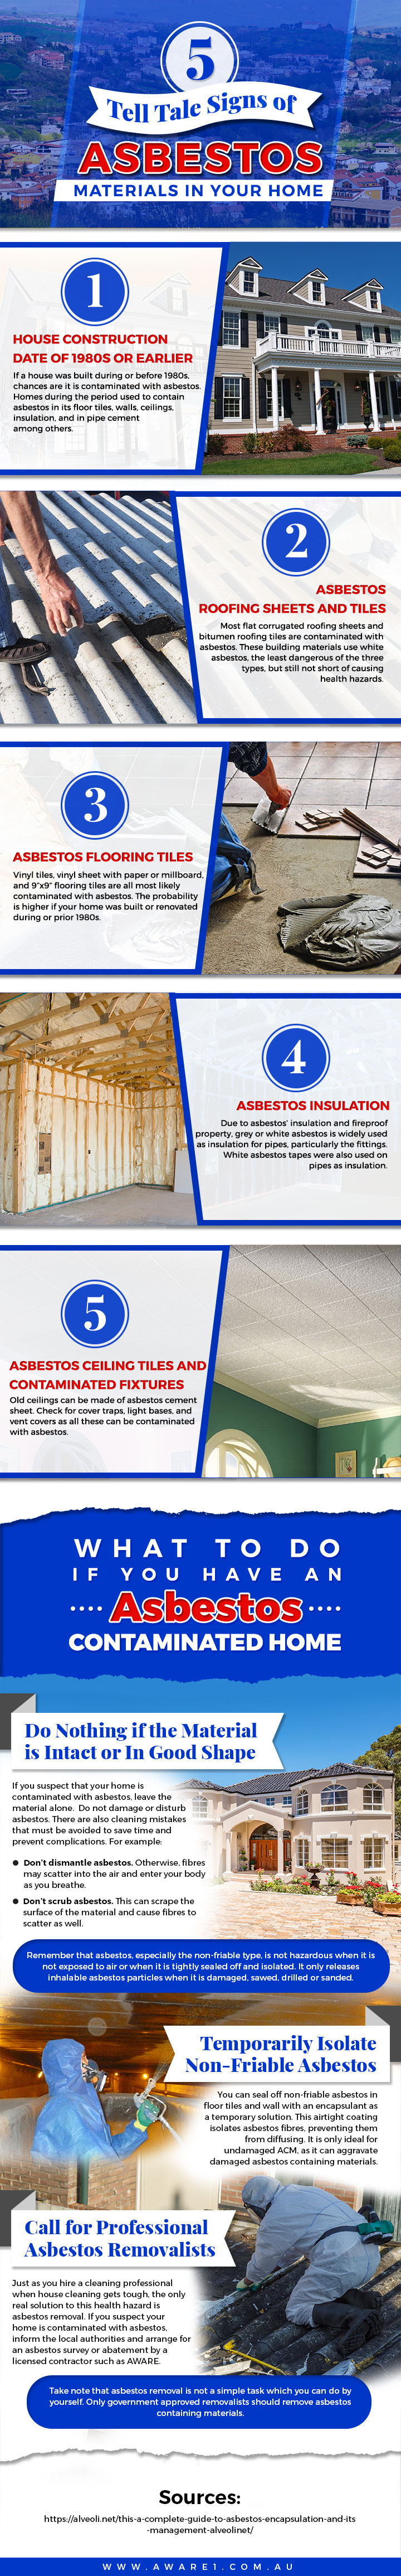 5 Tell Tale Signs of Asbestos Materials in Your Home